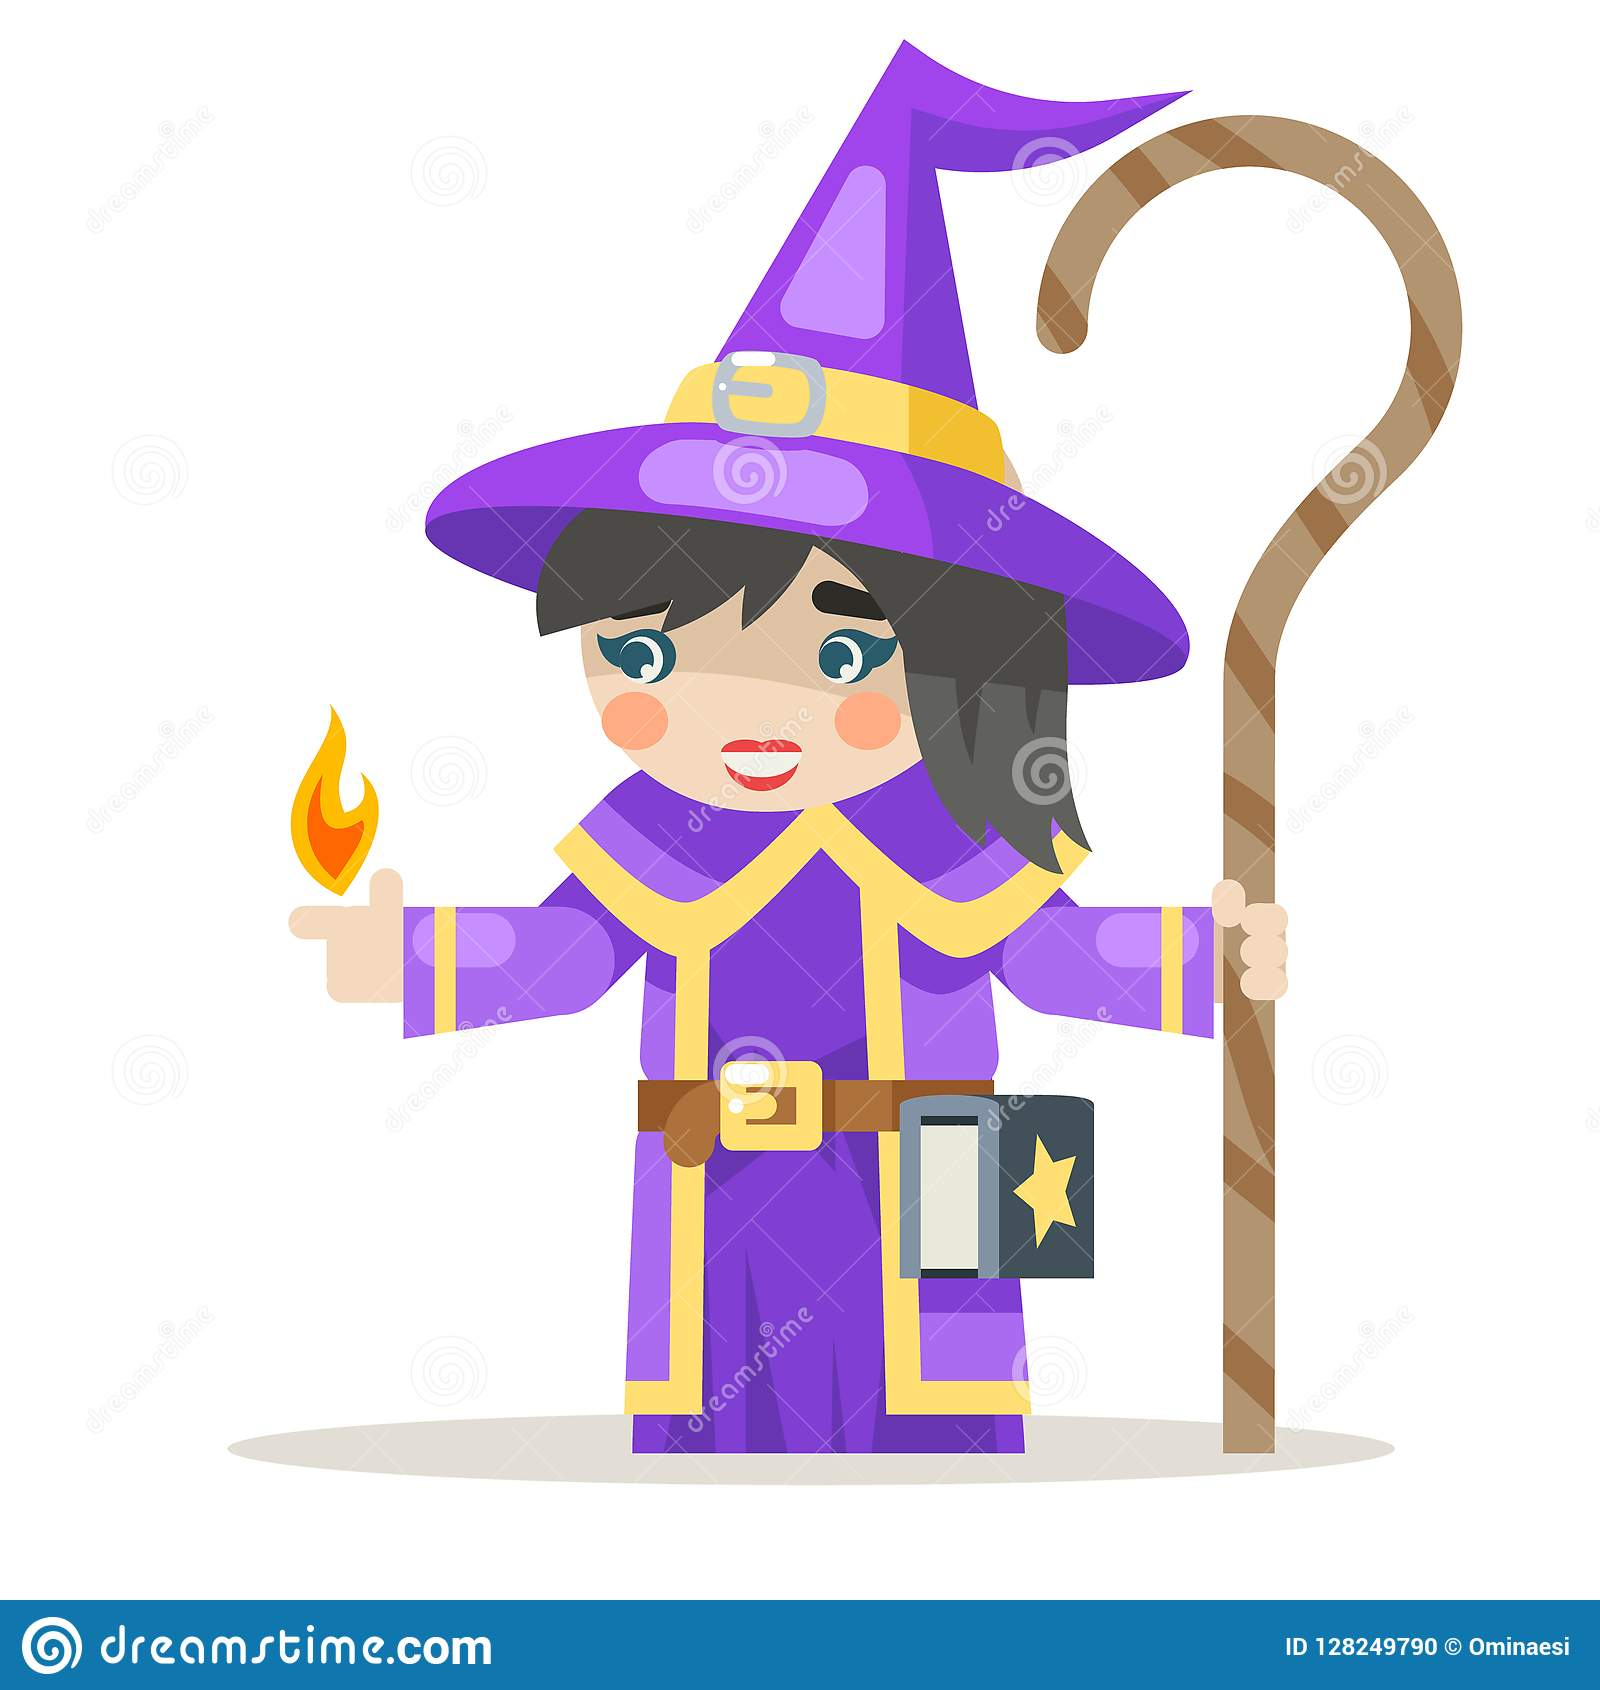 Sorceress layered girl mage warlock wisewoman female fantasy medieval action RPG game character animation ready vector